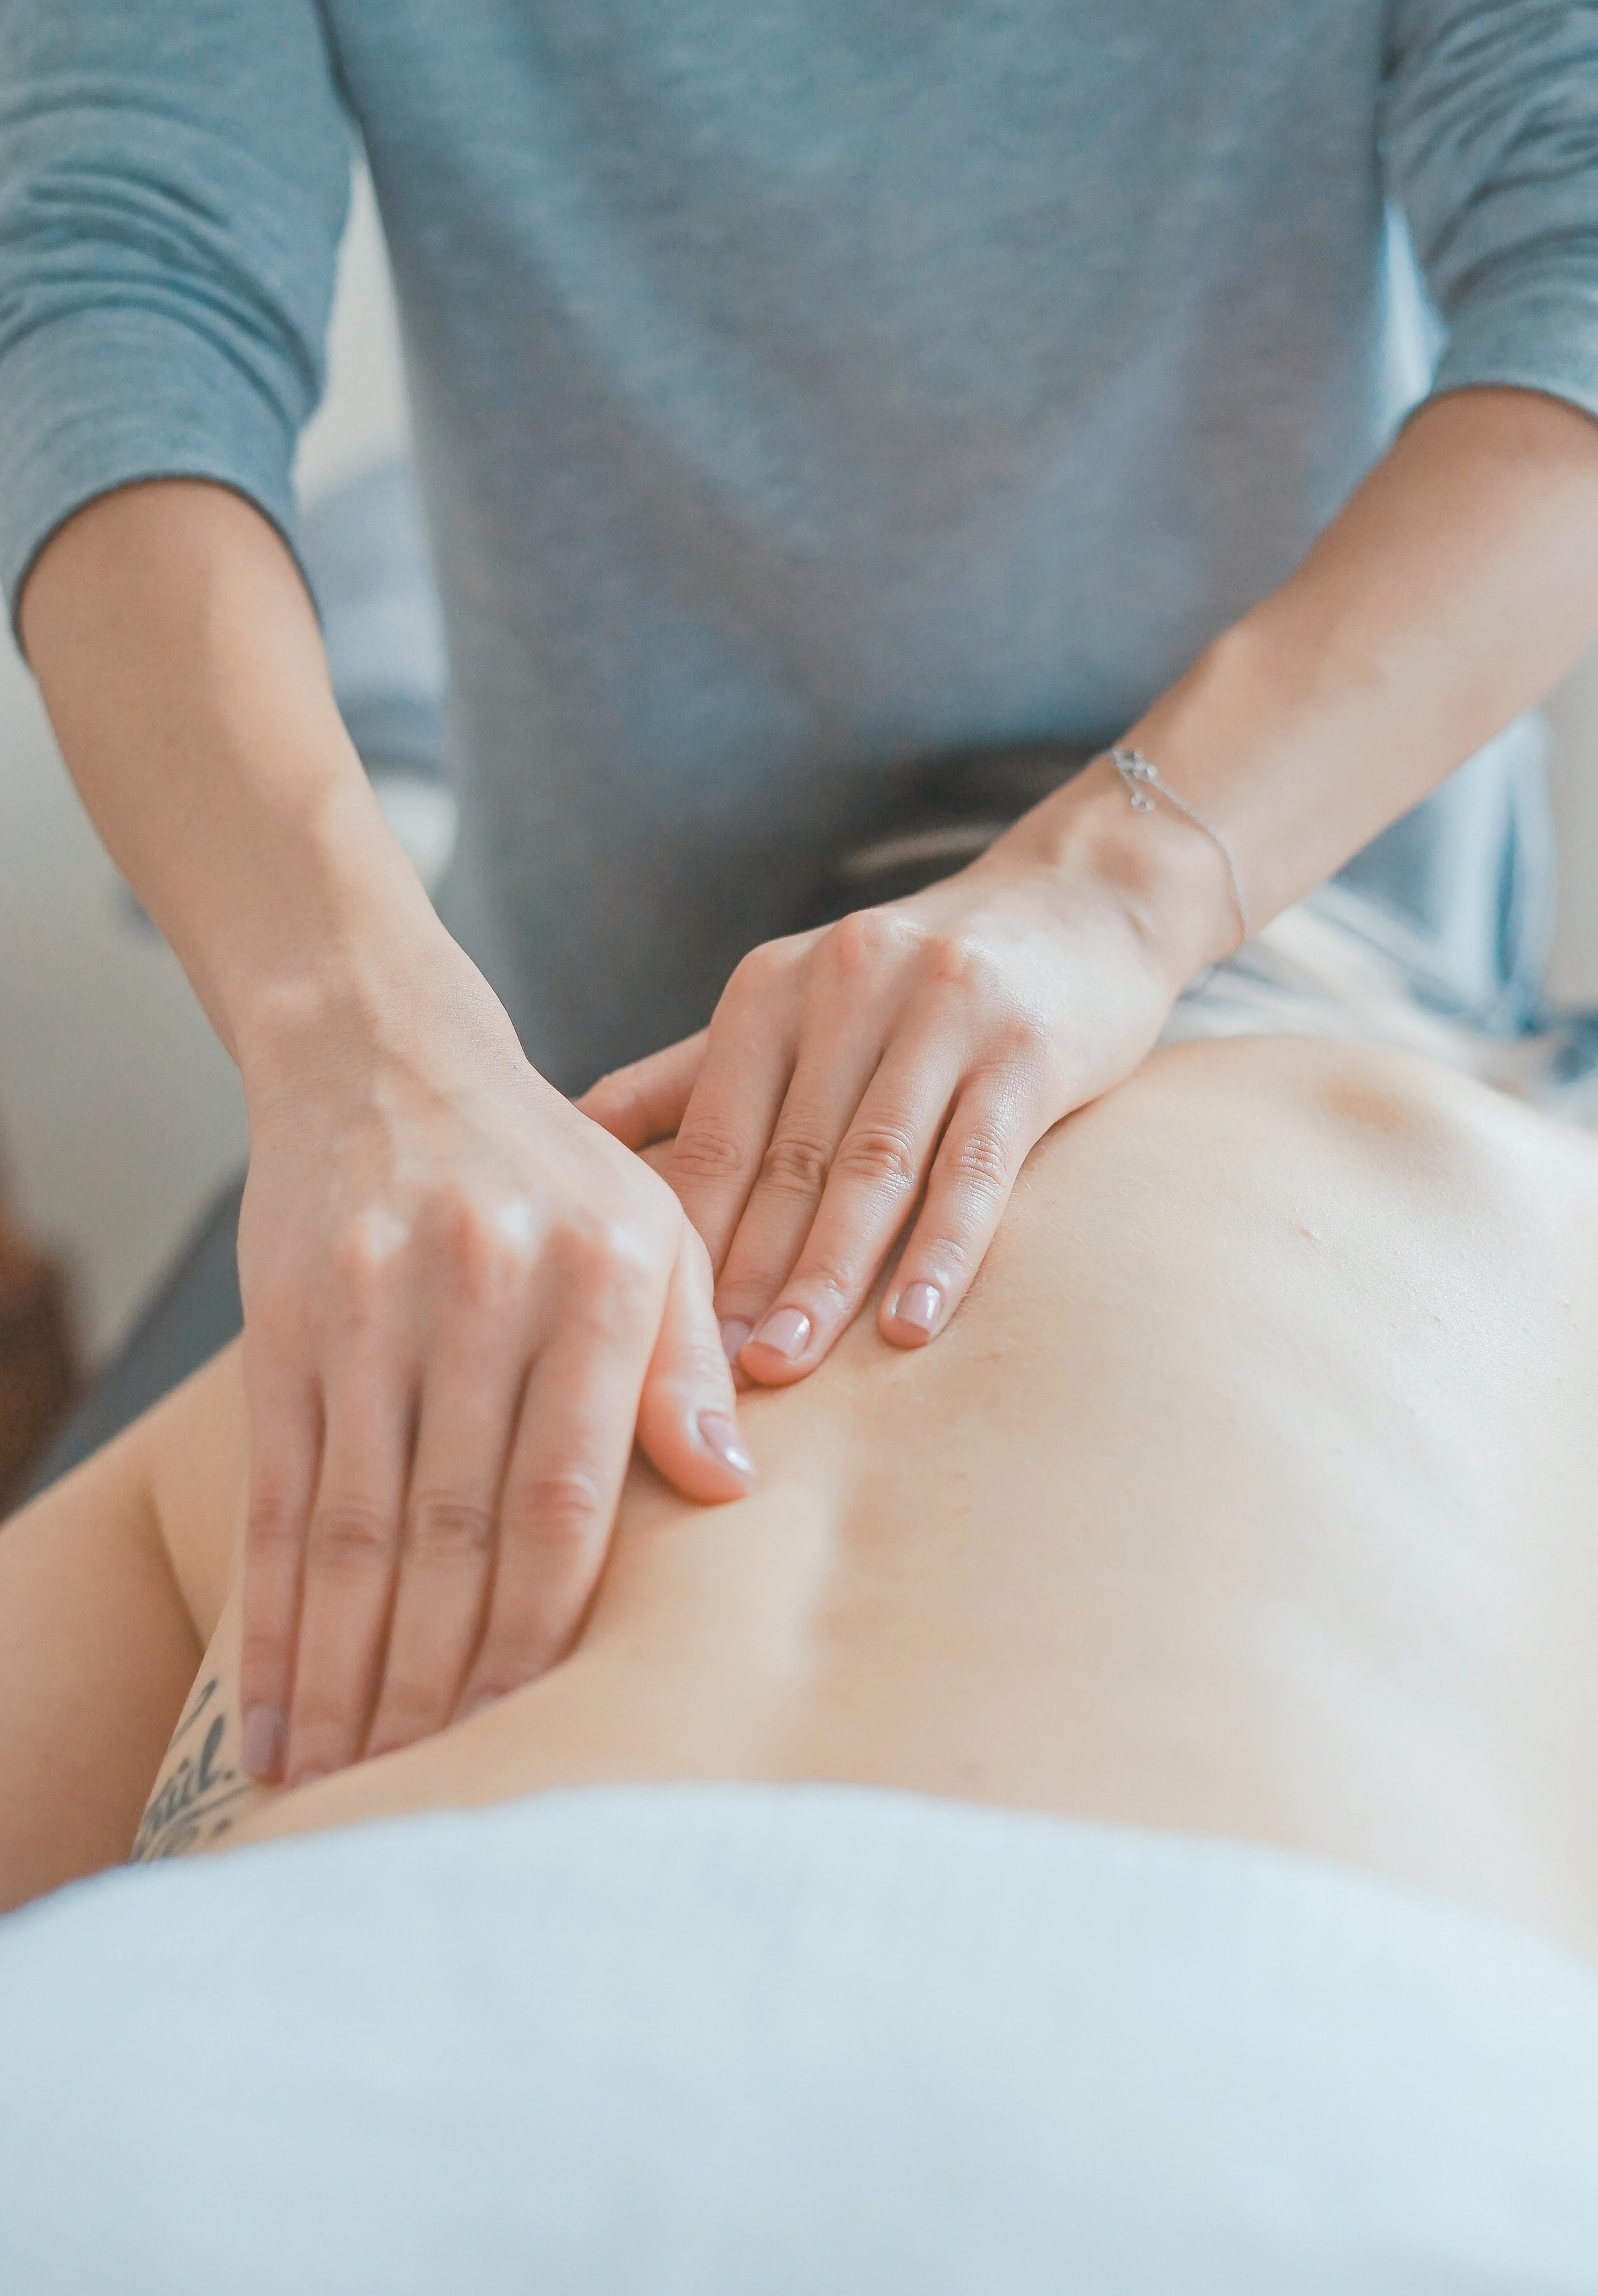 During: - When you arrive for your first massage at The W Spa, the first thing you will do is fill out paperwork with health history and other personal information. You will want to fill this out as honestly as possible. For example, if you just found out you are pregnant, you would want to make sure you tell your massage therapist this. They would make sure not to have the heated table top on or using any types of stimulating products.Your massage therapist will first lead you to the tranquility room. Here you can undress to your comfort level, change into a cozy robe, and take a few minutes to relax. When your massage therapist is ready for you, they'll lead you to the massage room and start by telling you a little bit about what to expect. They will tell you to lay down on the table, face up. A 60 minute full body massage typically starts with a head & scalp massage to get you relaxed. Then, they will work the neck and shoulders, move on to each arm, and work their way to the legs & feet. Next, you will flip around on the massage table and they will work on the back of the legs and potentially the glutes. Glute work is discussed prior to the start of the massage. It can be very intense but always a great benefit. Your therapist will finish with a back massage. Finally, you are able to flip over once more and have your scalp and sinuses cleared before you are done with your first massage.